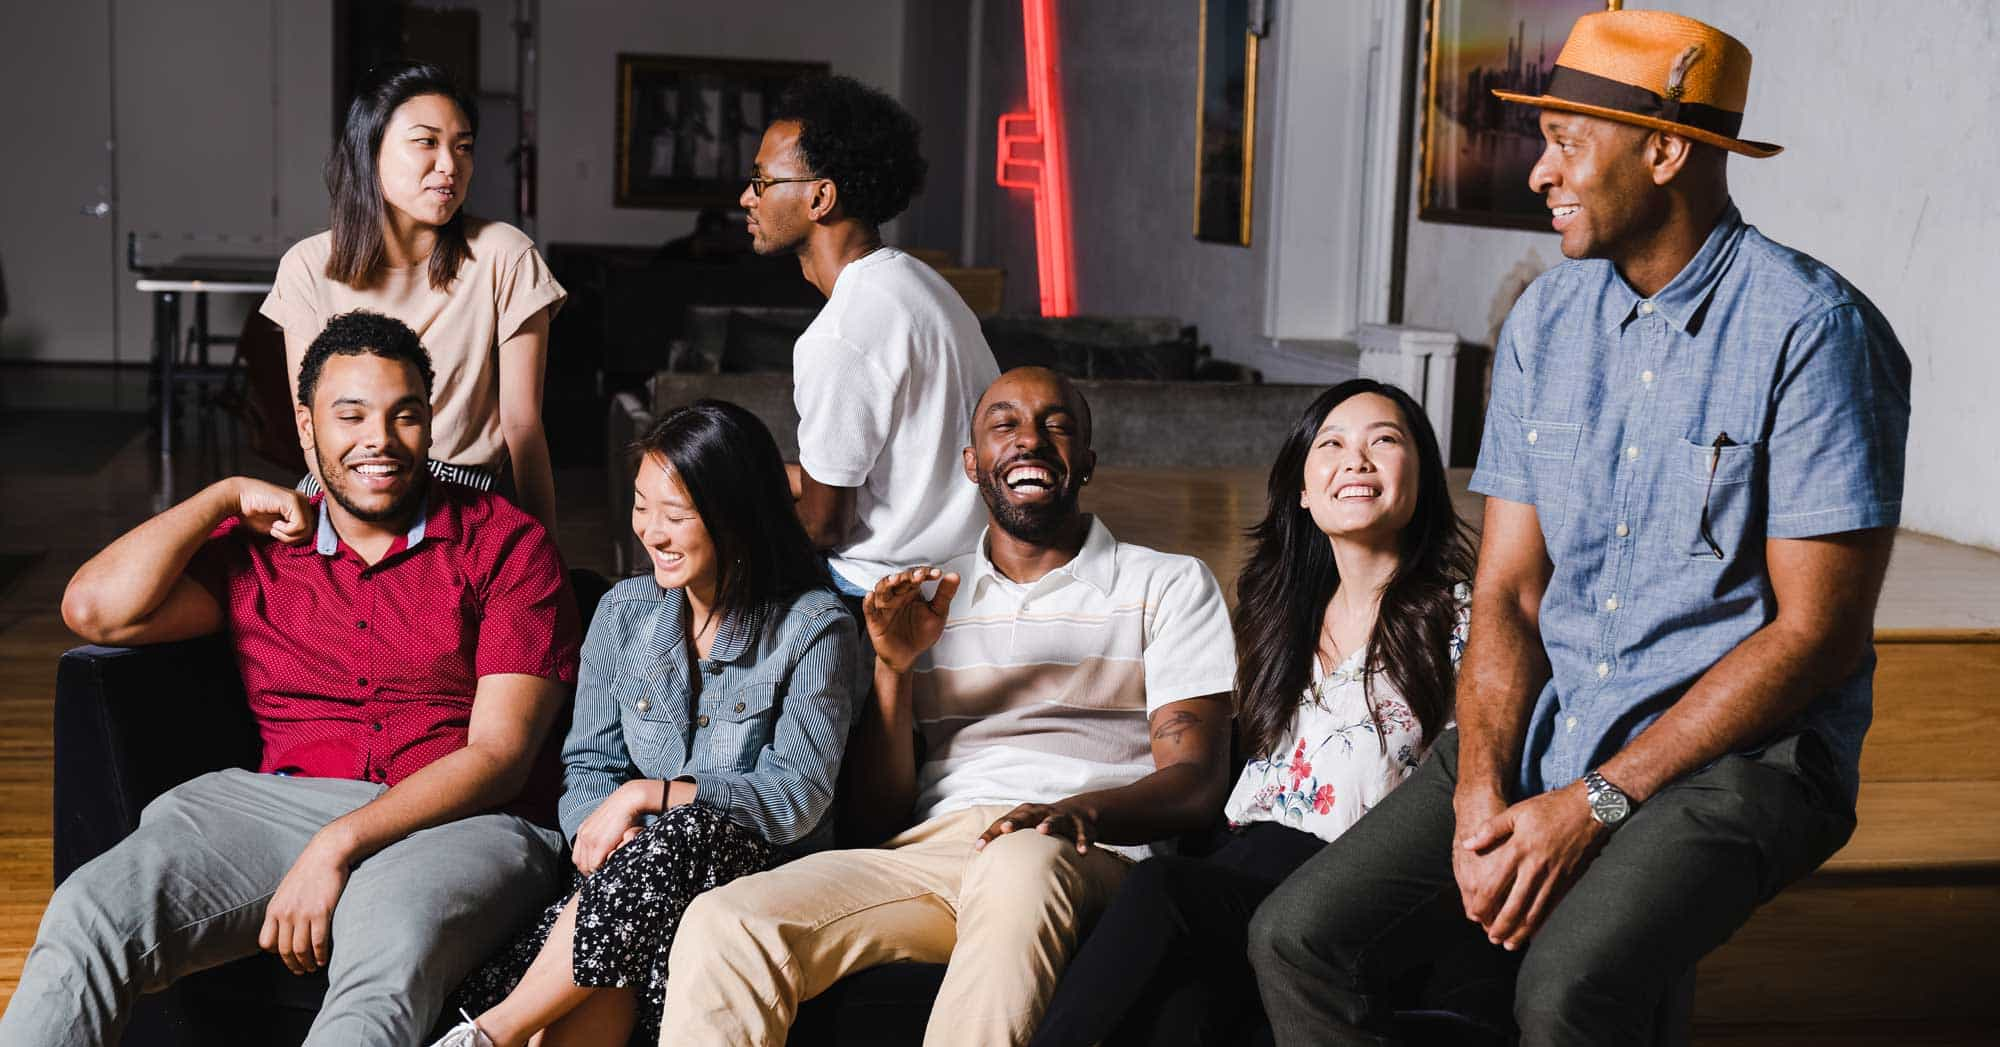 A group of Black, Asian, and Latinx friends smile and laugh on a couch in a diverse stock photo from TONL